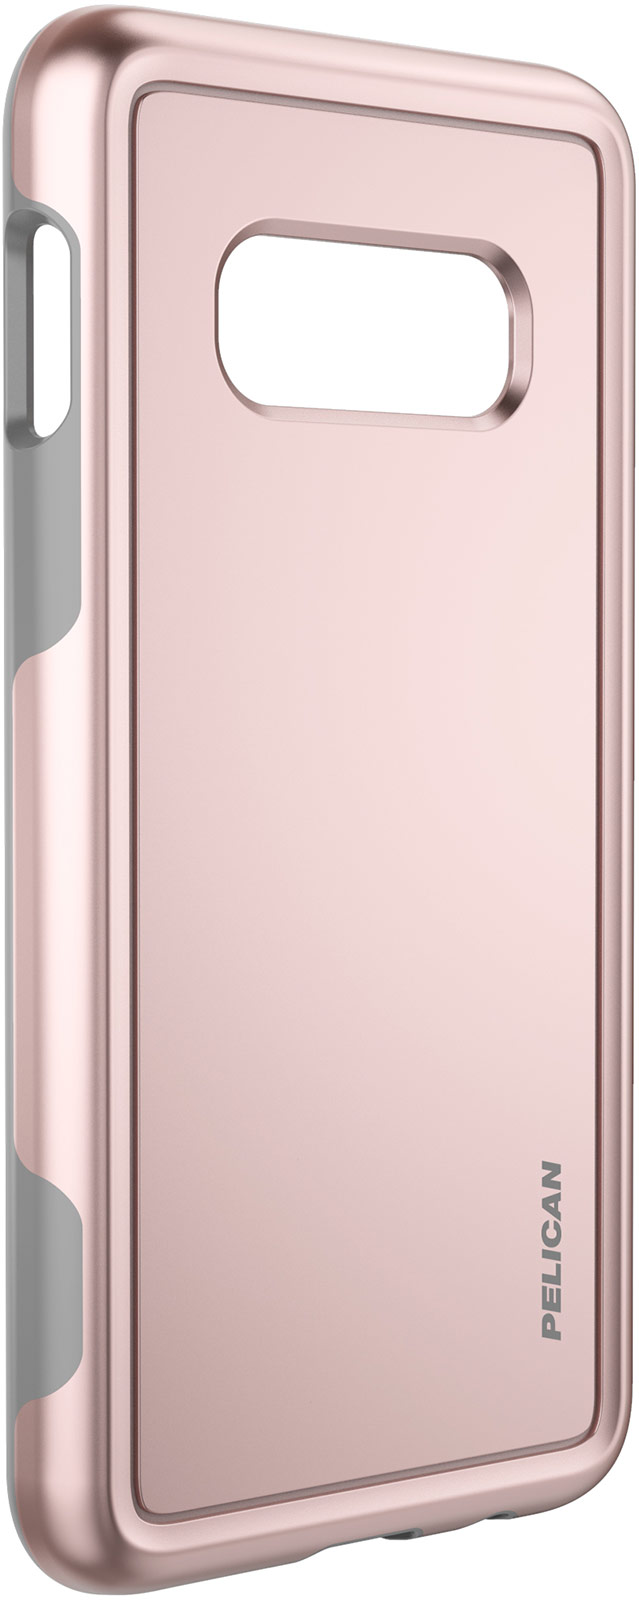 pelican c48100 samsung galaxy s10e rose gold phone case